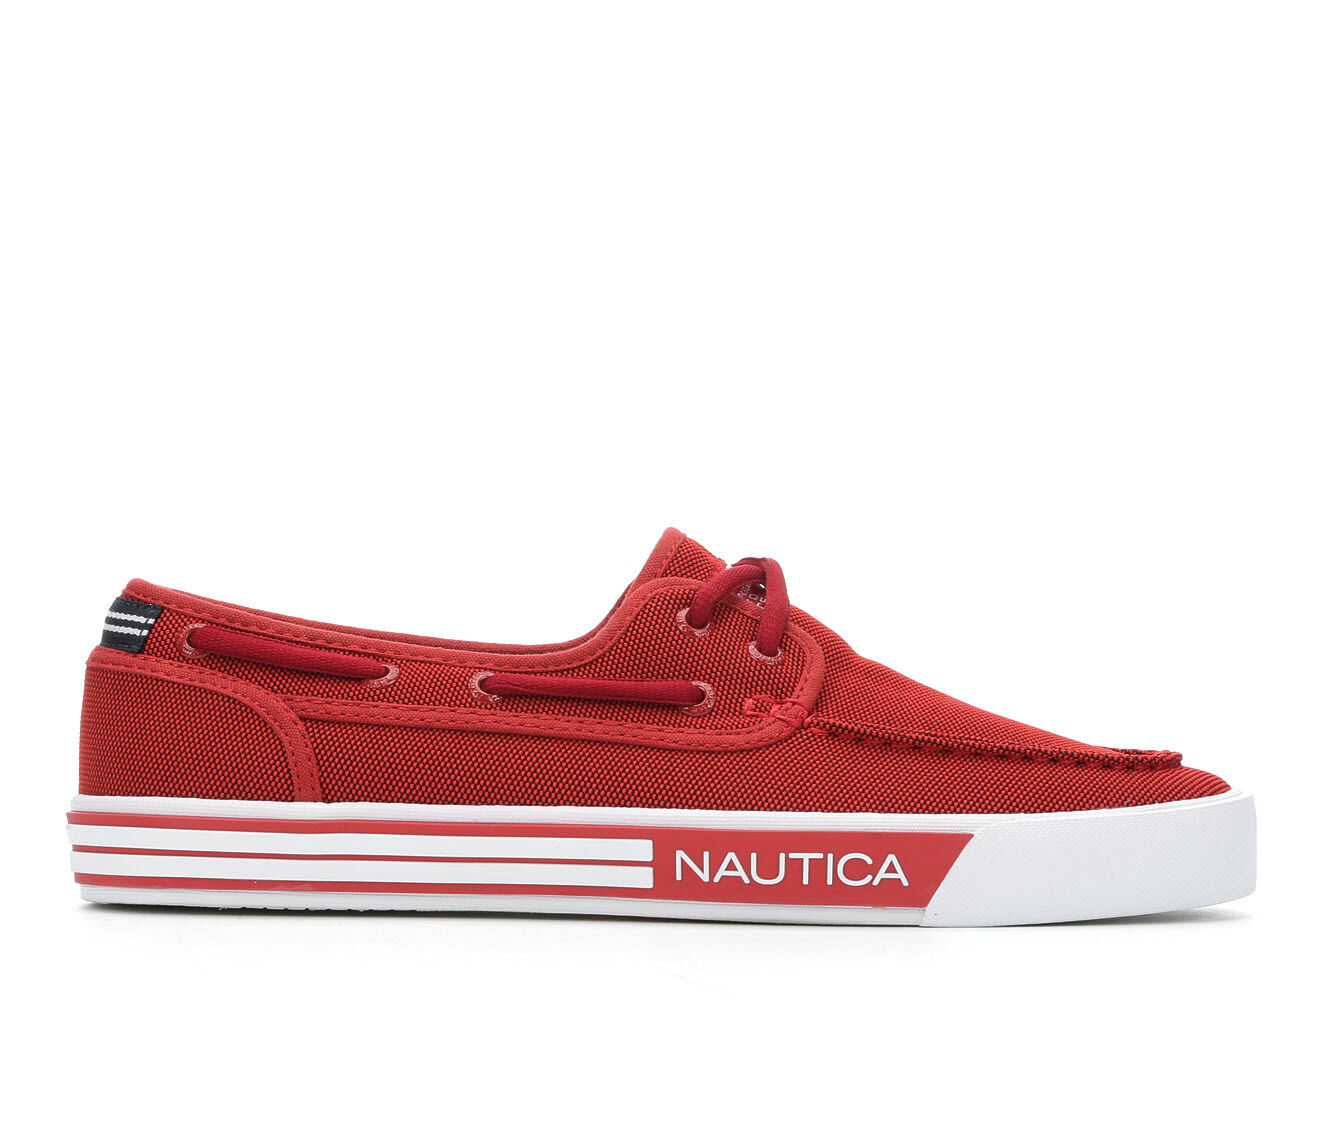 Men's Nautica Spinnaker Casual Shoes Red Knit